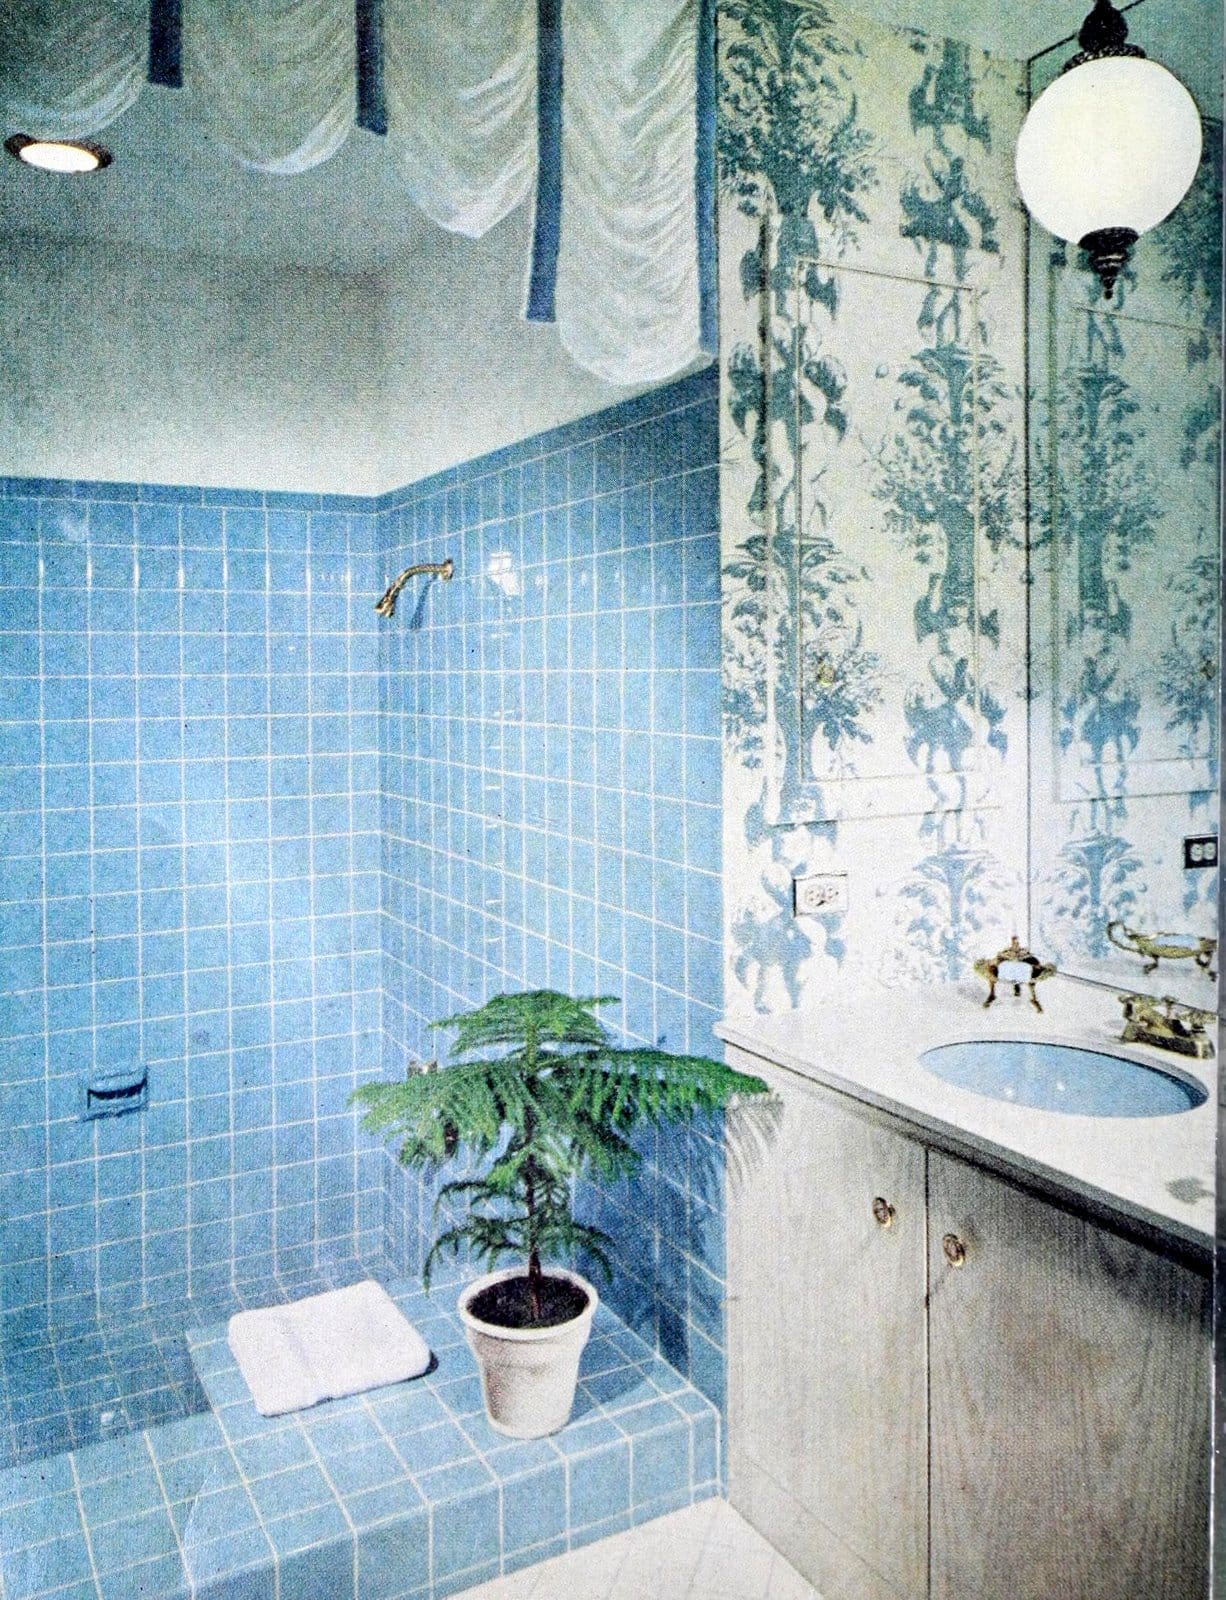 Vintage sixties blue square tiles in bathroom shower stall